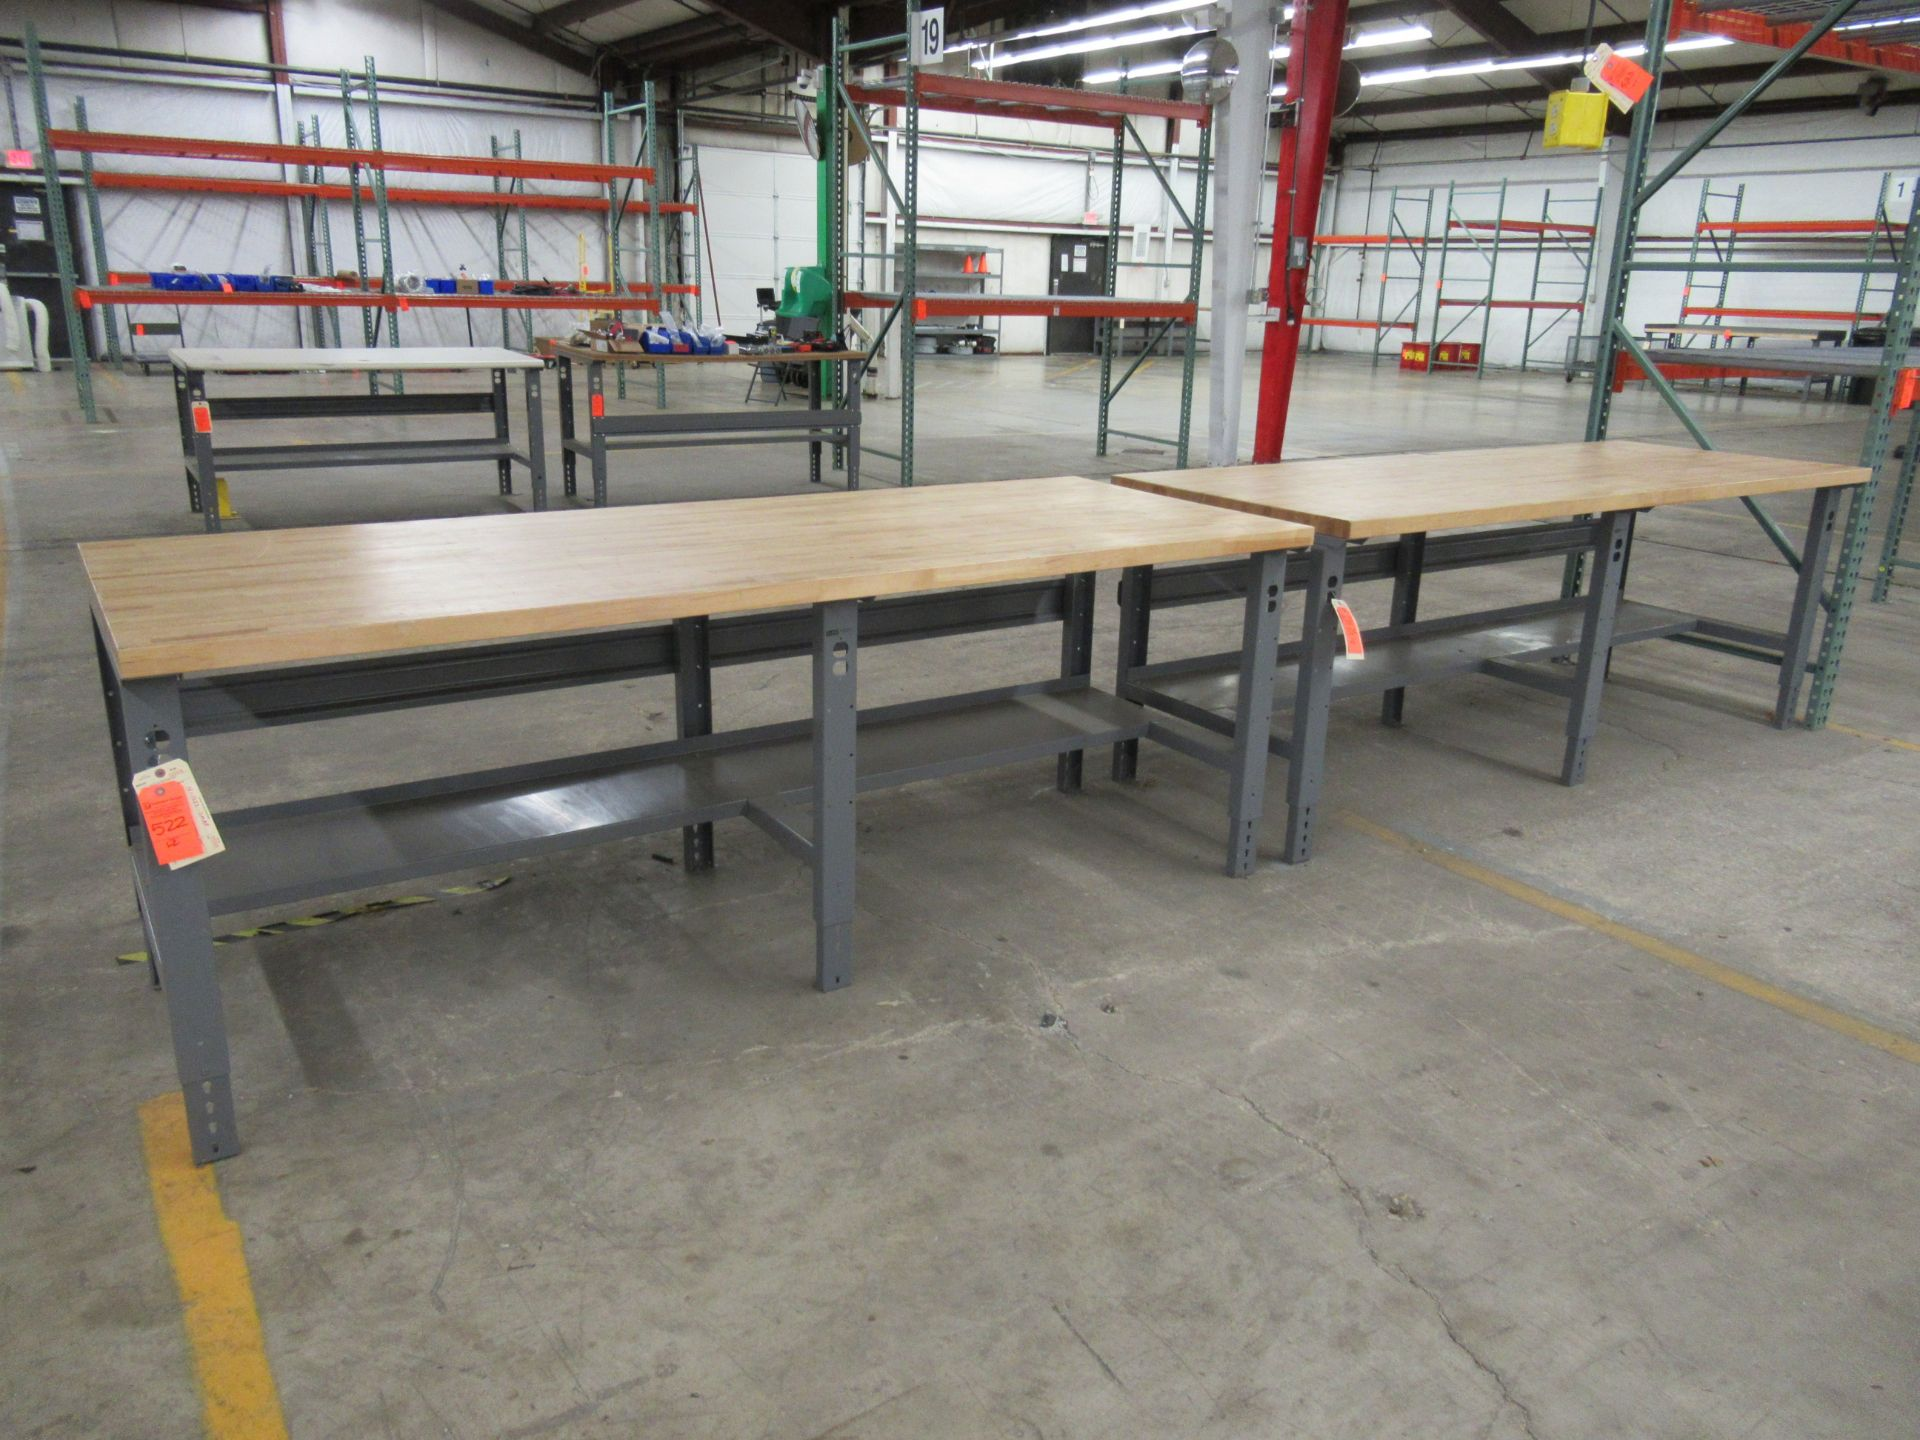 """Lot 224 - 2 Uline H-1222-MSAP Industrial Packing Tables 96"""" x 36"""""""